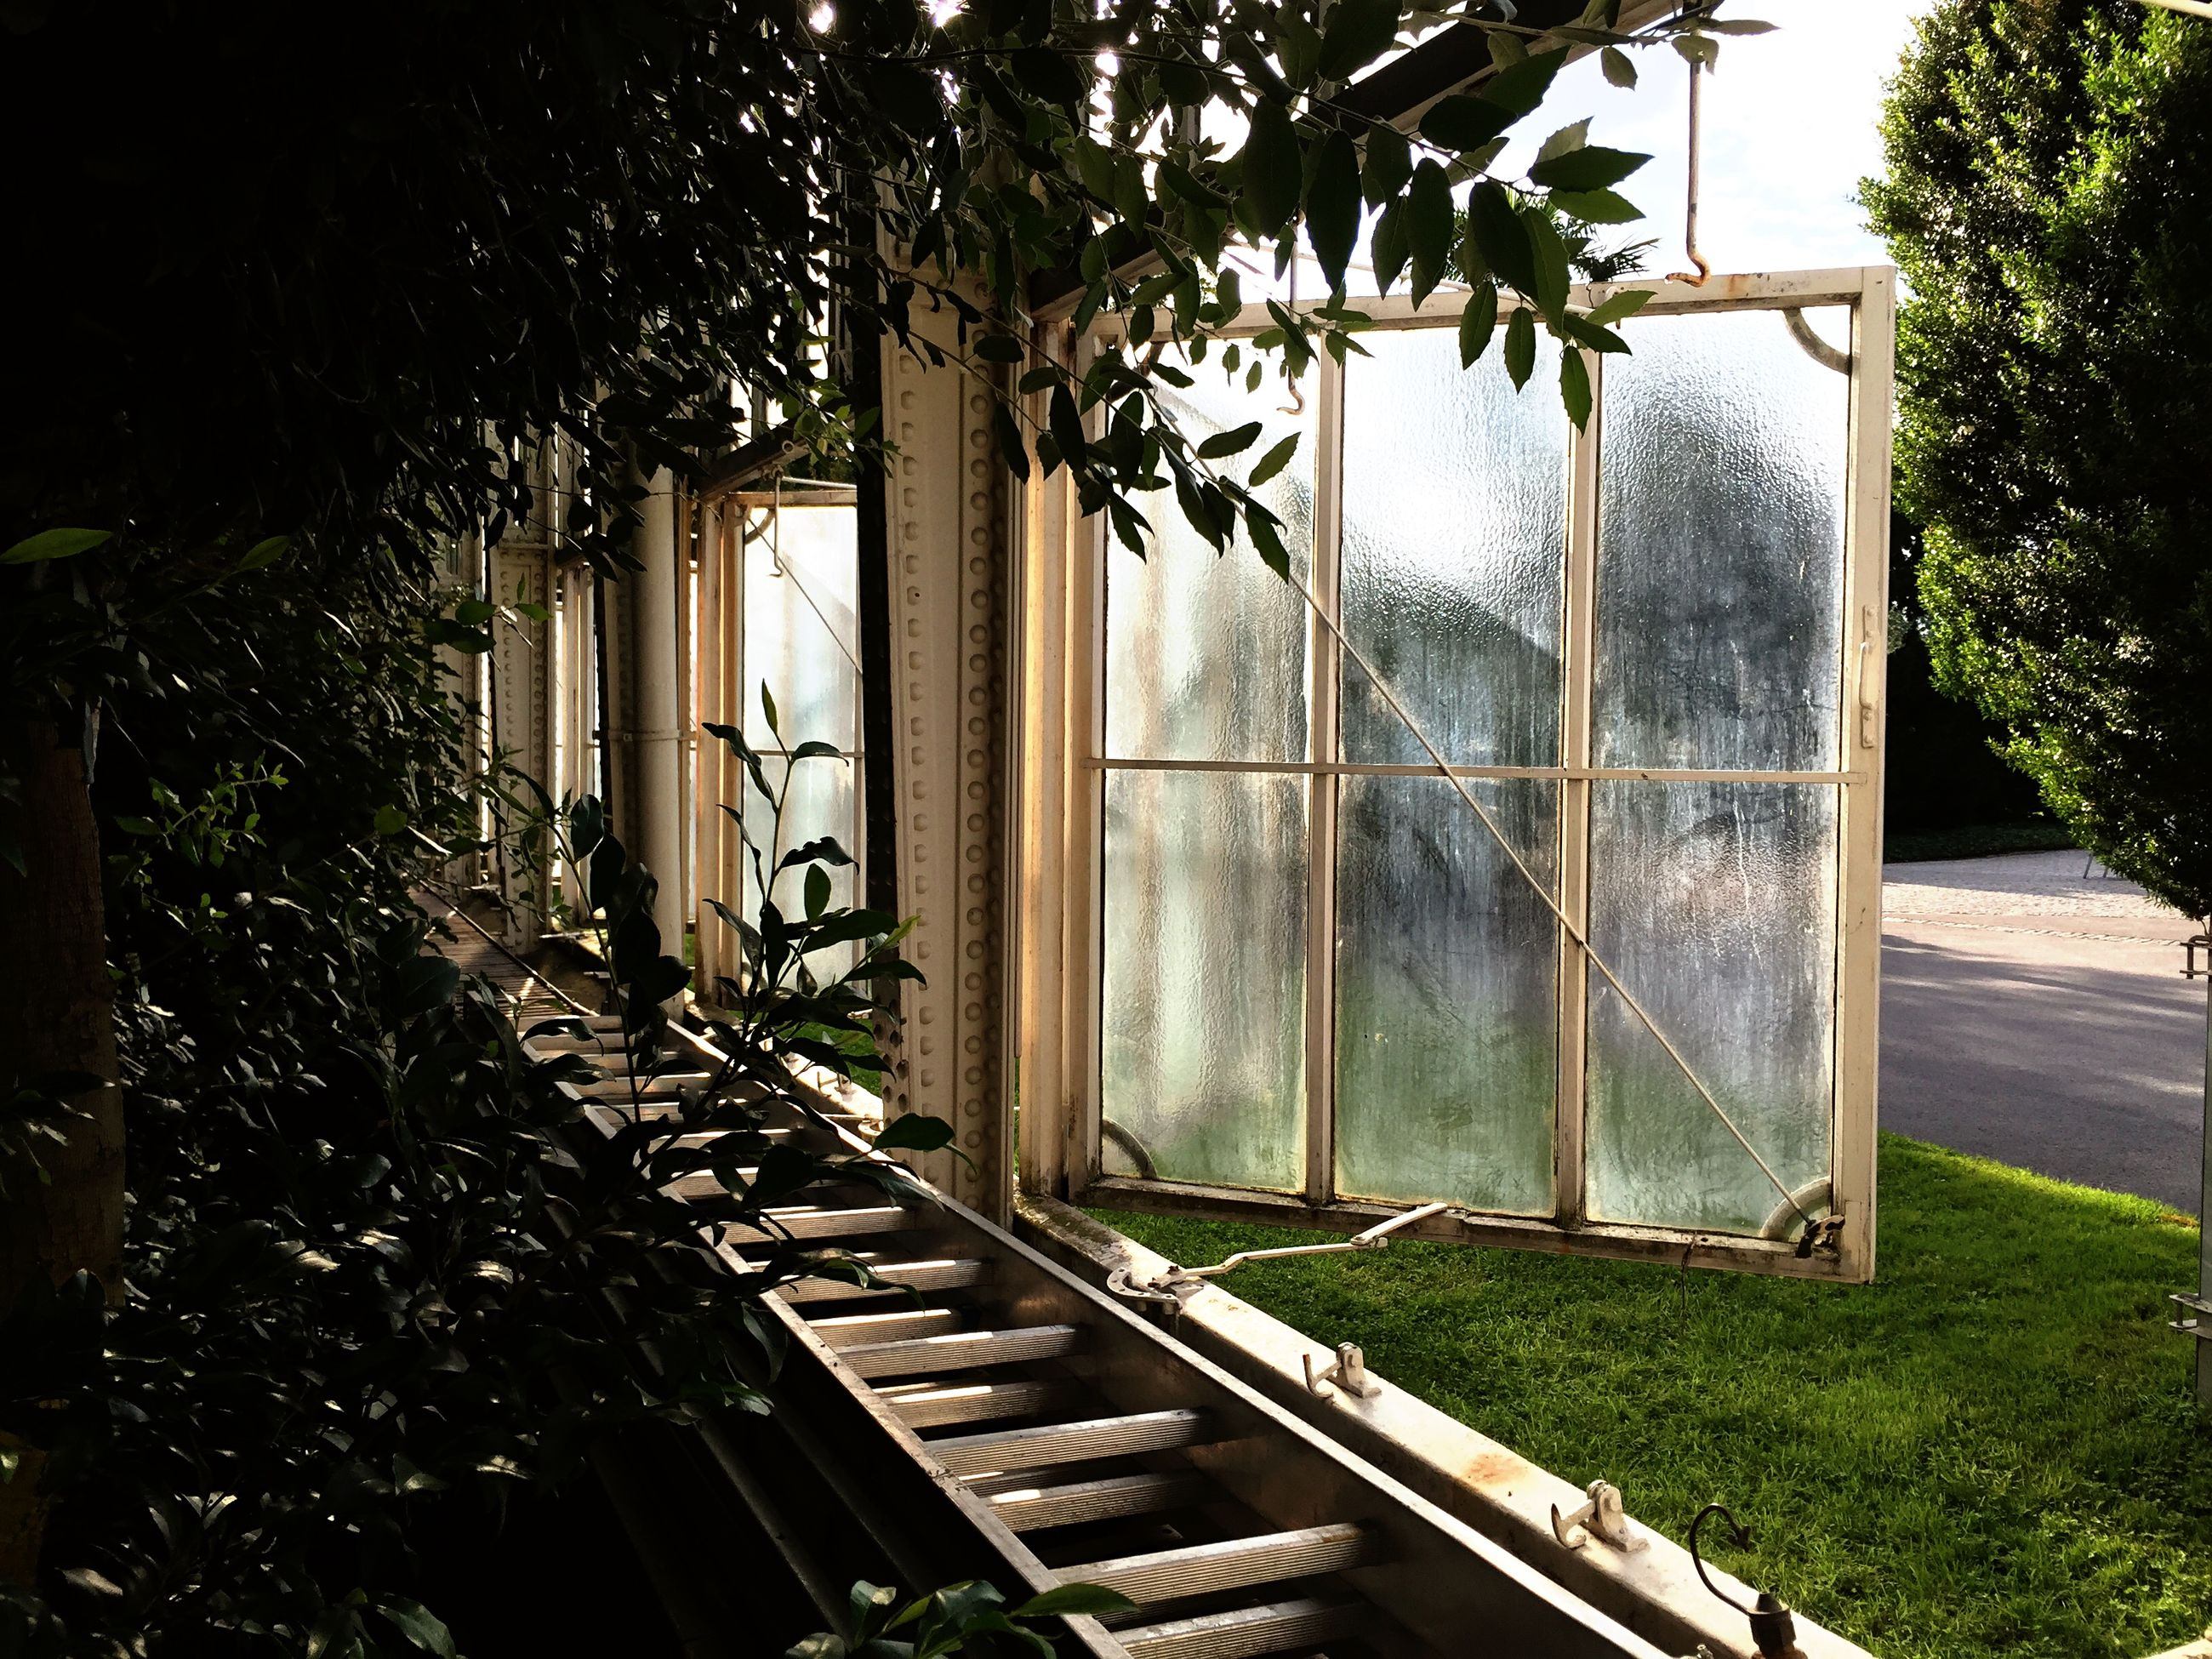 window, building exterior, tree, architecture, built structure, glass - material, house, grass, growth, closed, transparent, plant, day, no people, green color, door, metal, fence, outdoors, sunlight